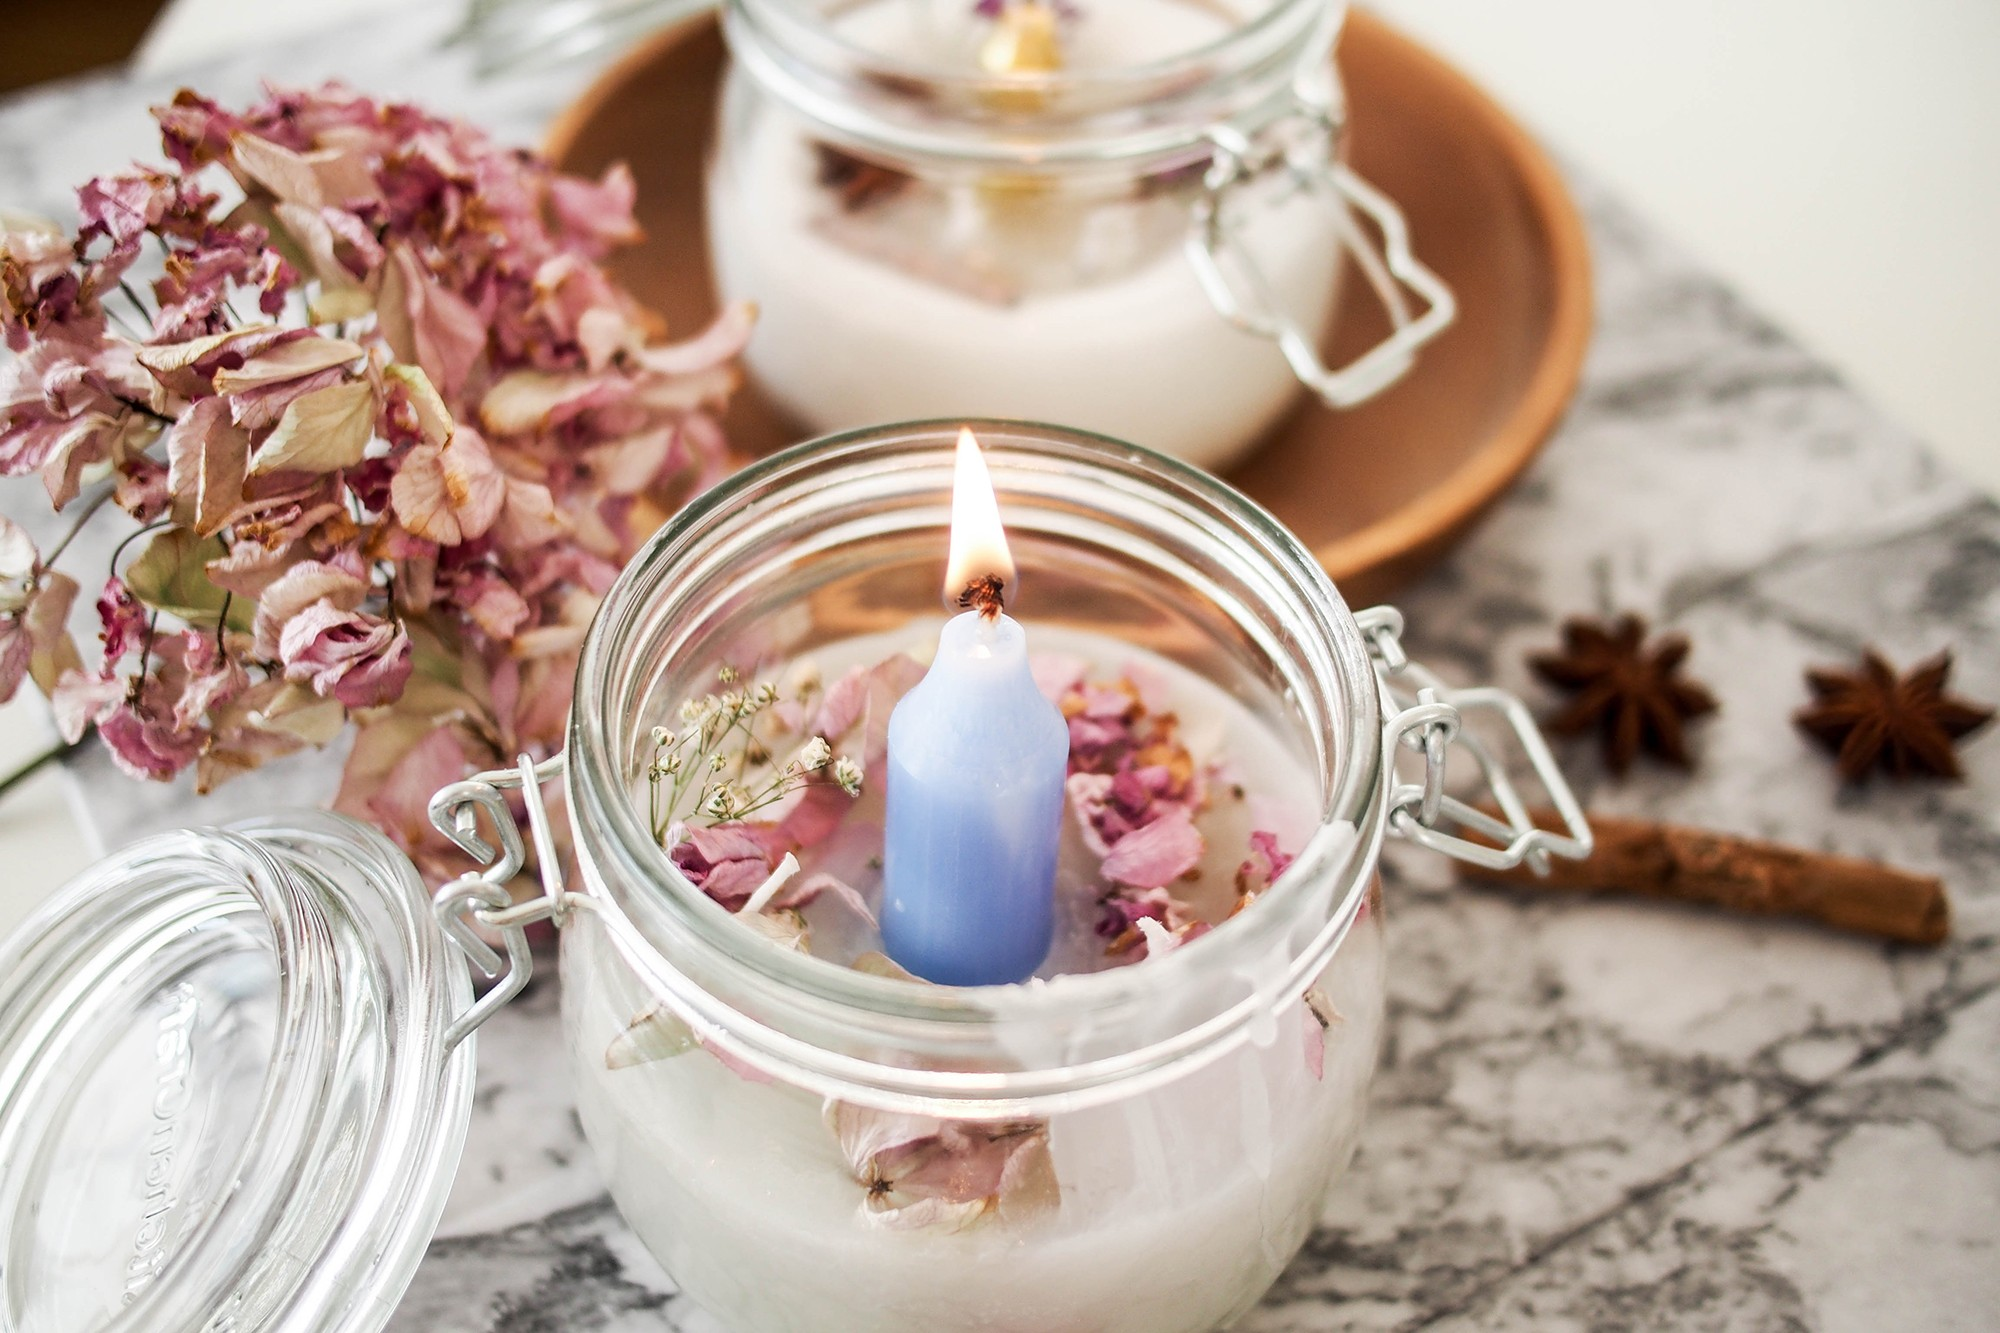 How To Make Good Smelling Candles